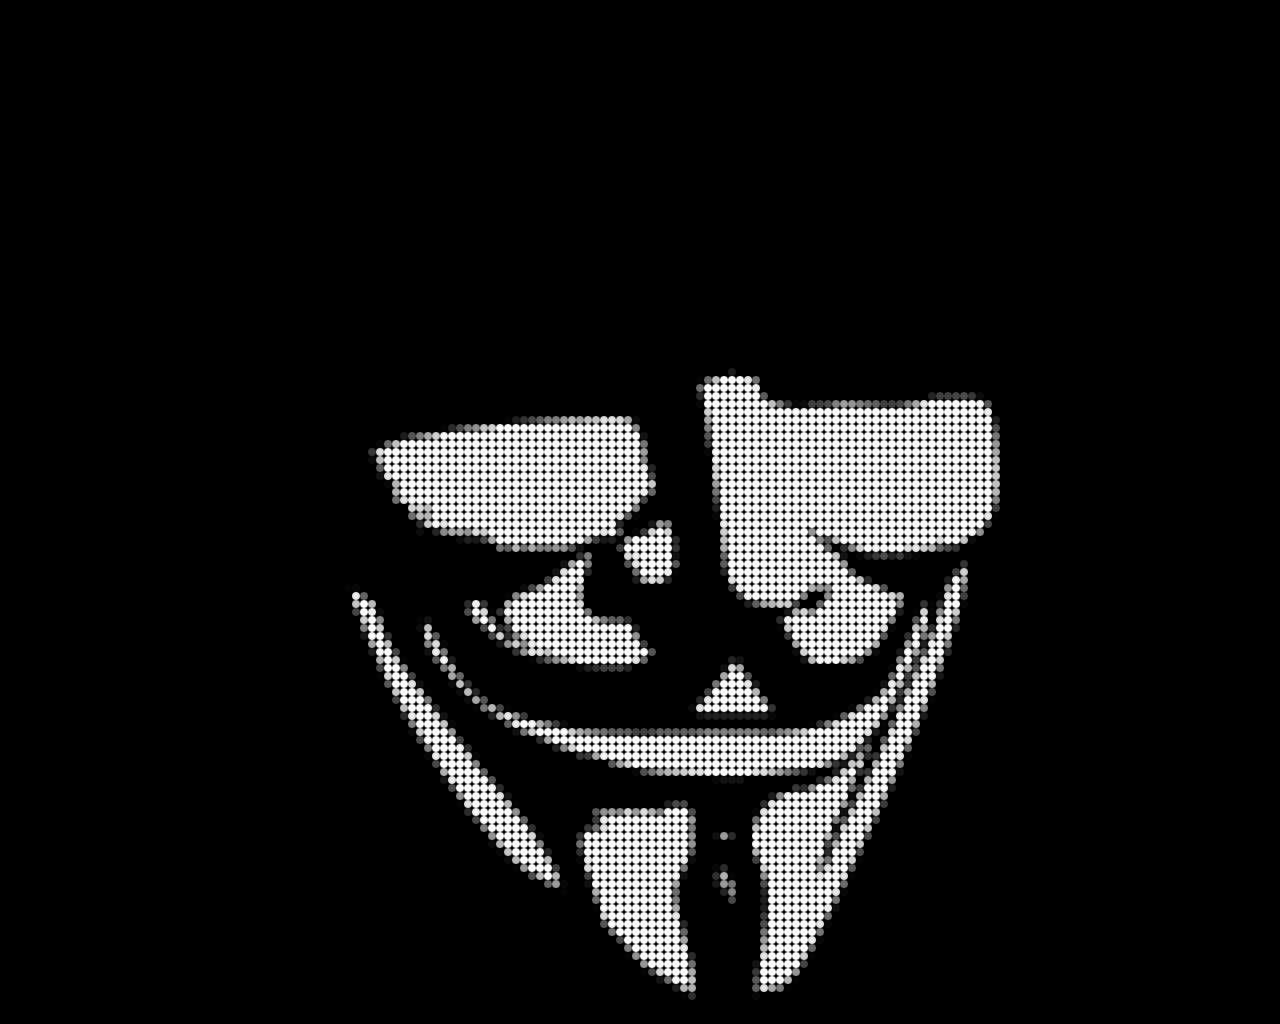 V-for-Vendetta-v-for-vendetta-13512443-1280-1024.